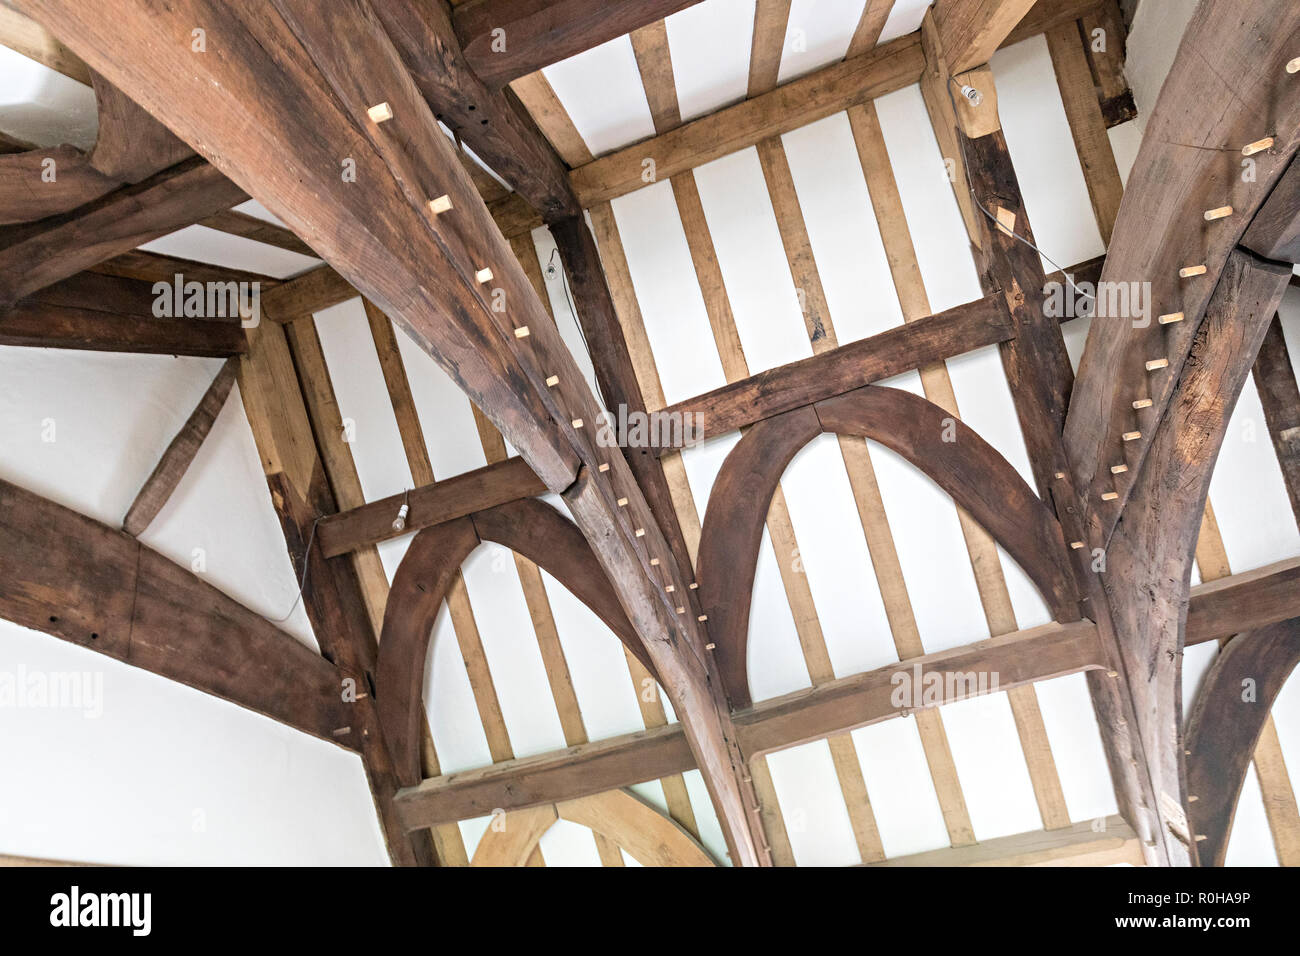 Roof interior with pegged beams at house restoration by the Landmark Trust, Llwyn y Celyn, Lower Cwmyoy, Wales, UK - Stock Image